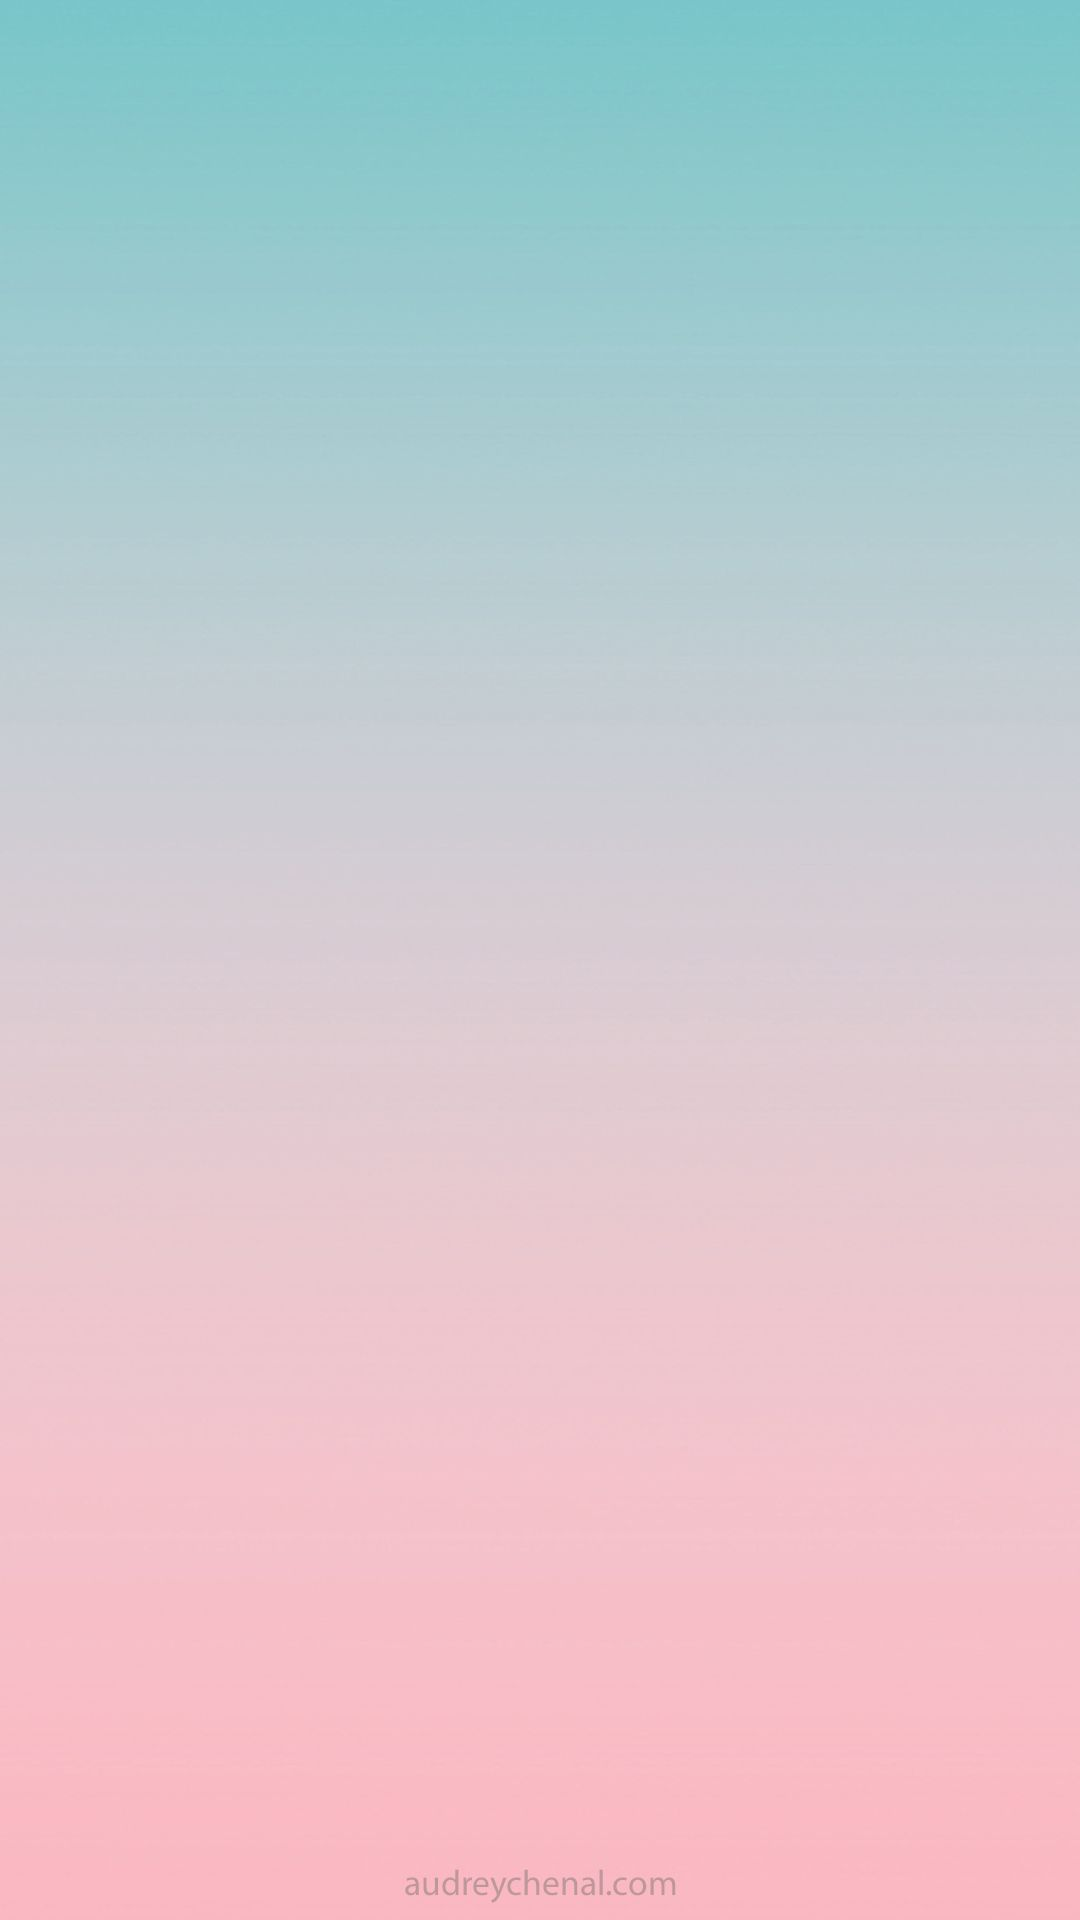 Modern Blue Pink Gradient Ombre Iphone Wallpaper By Audrey Chenal Wallpaper Gradient Ombre Free Background Images Solid Color Backgrounds Ombre Wallpapers